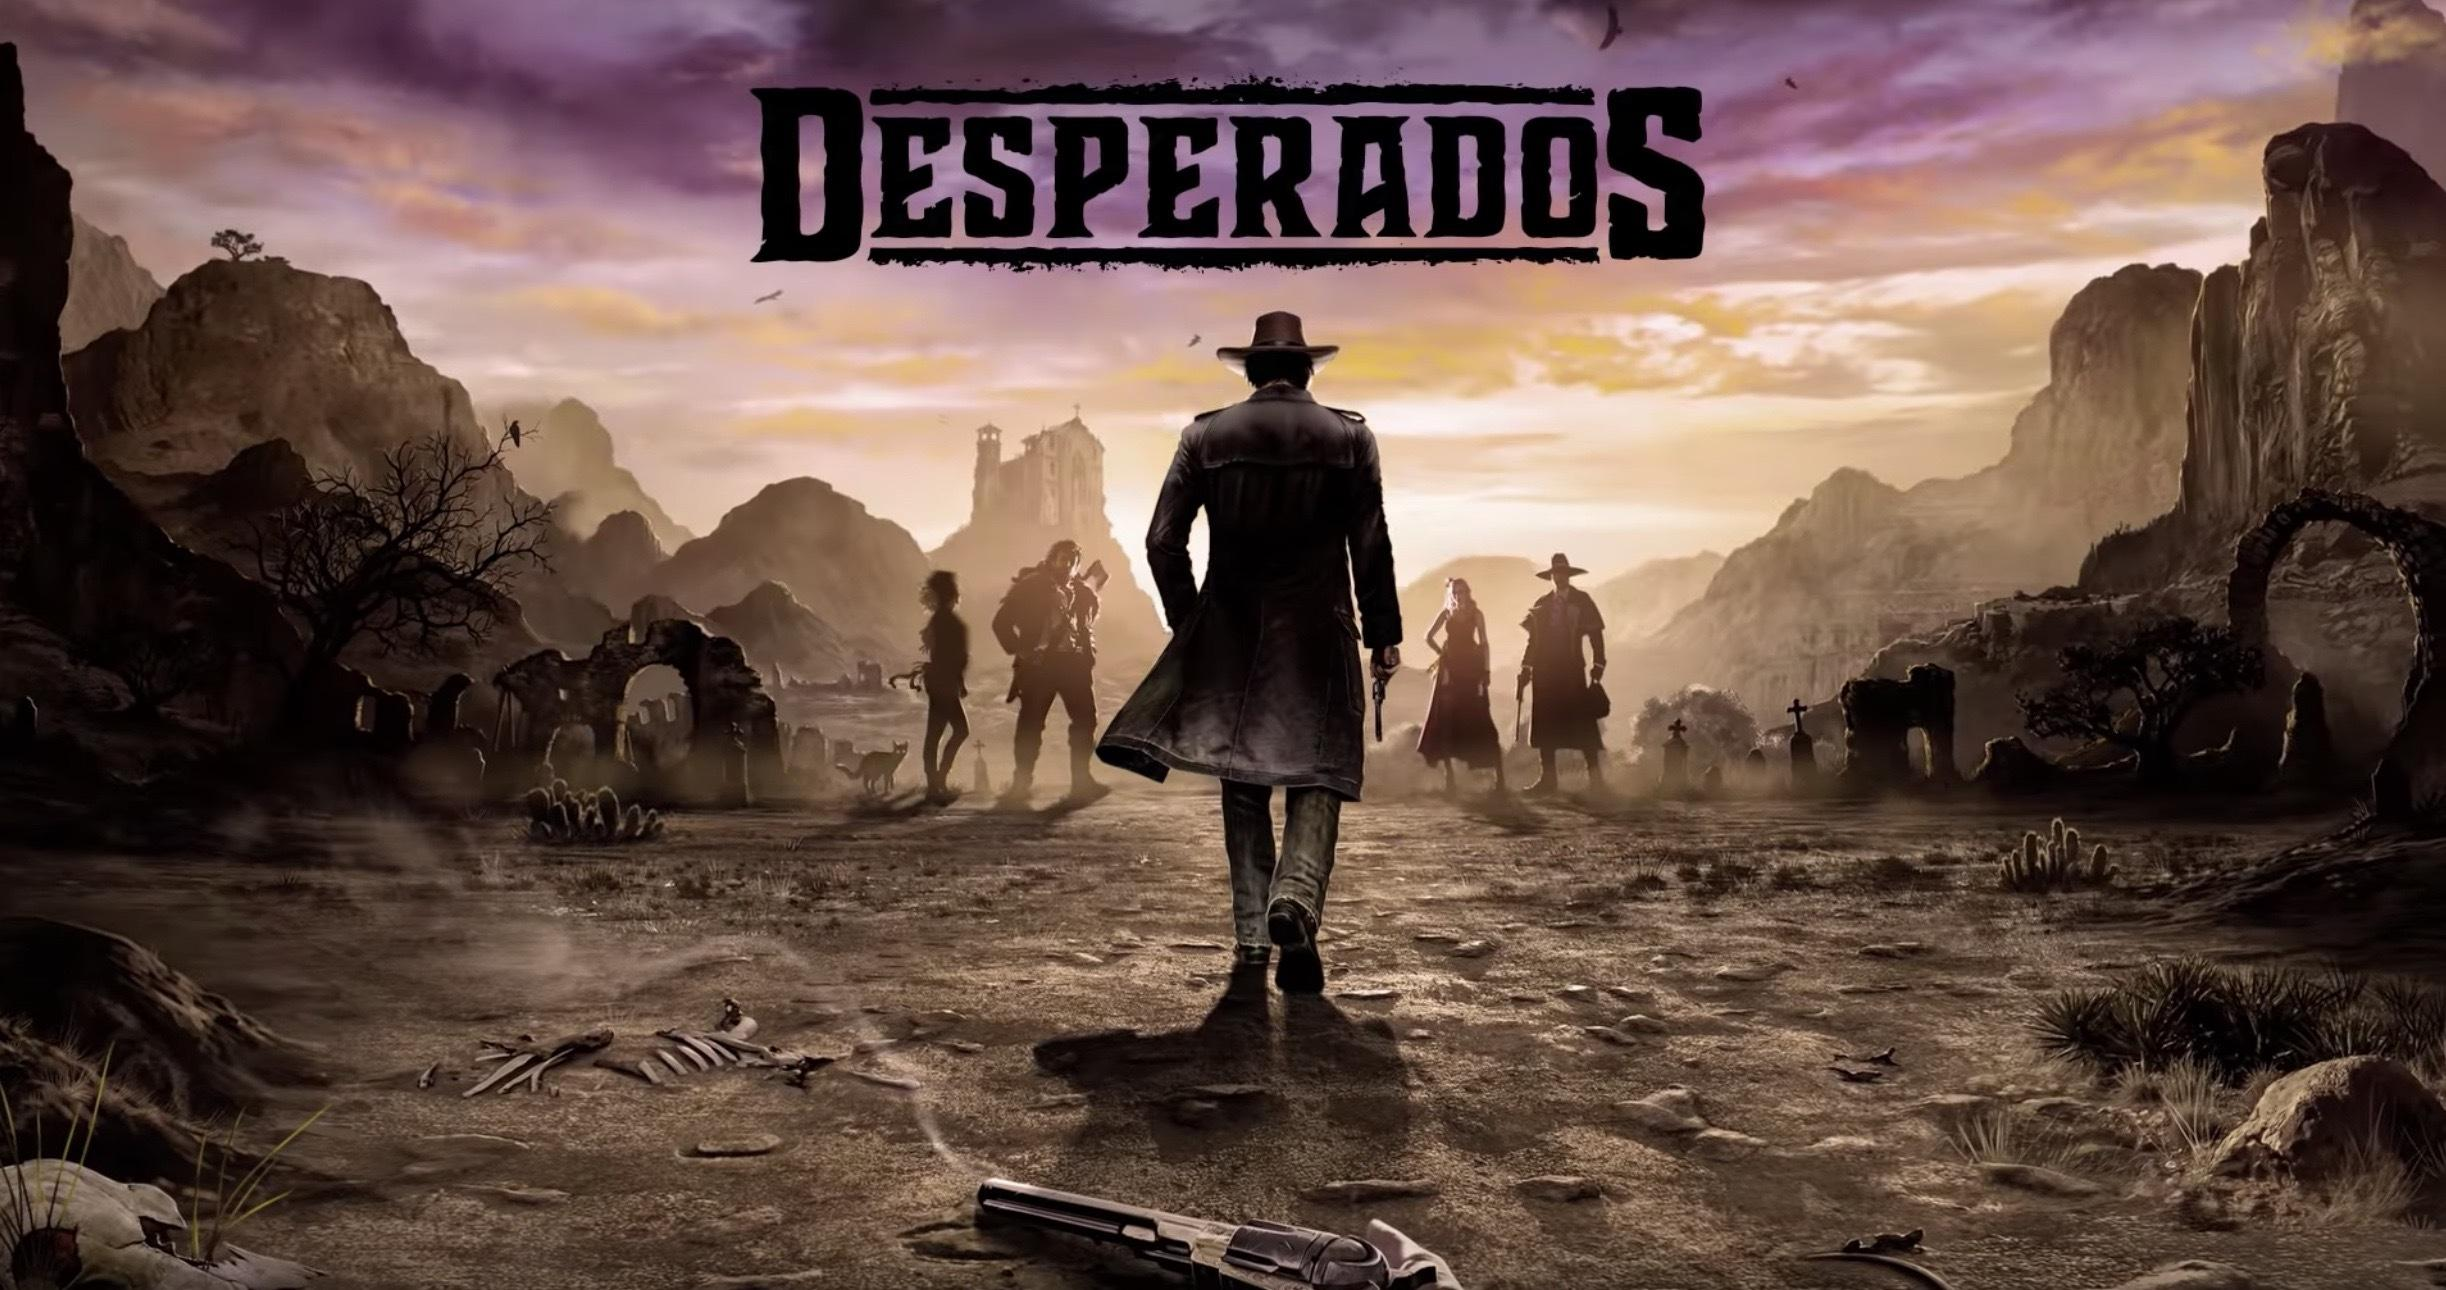 Wild West Rts Desperados Iii Heading To Consoles In 2019 Xbox One Xbox 360 News At Xboxachievements Com